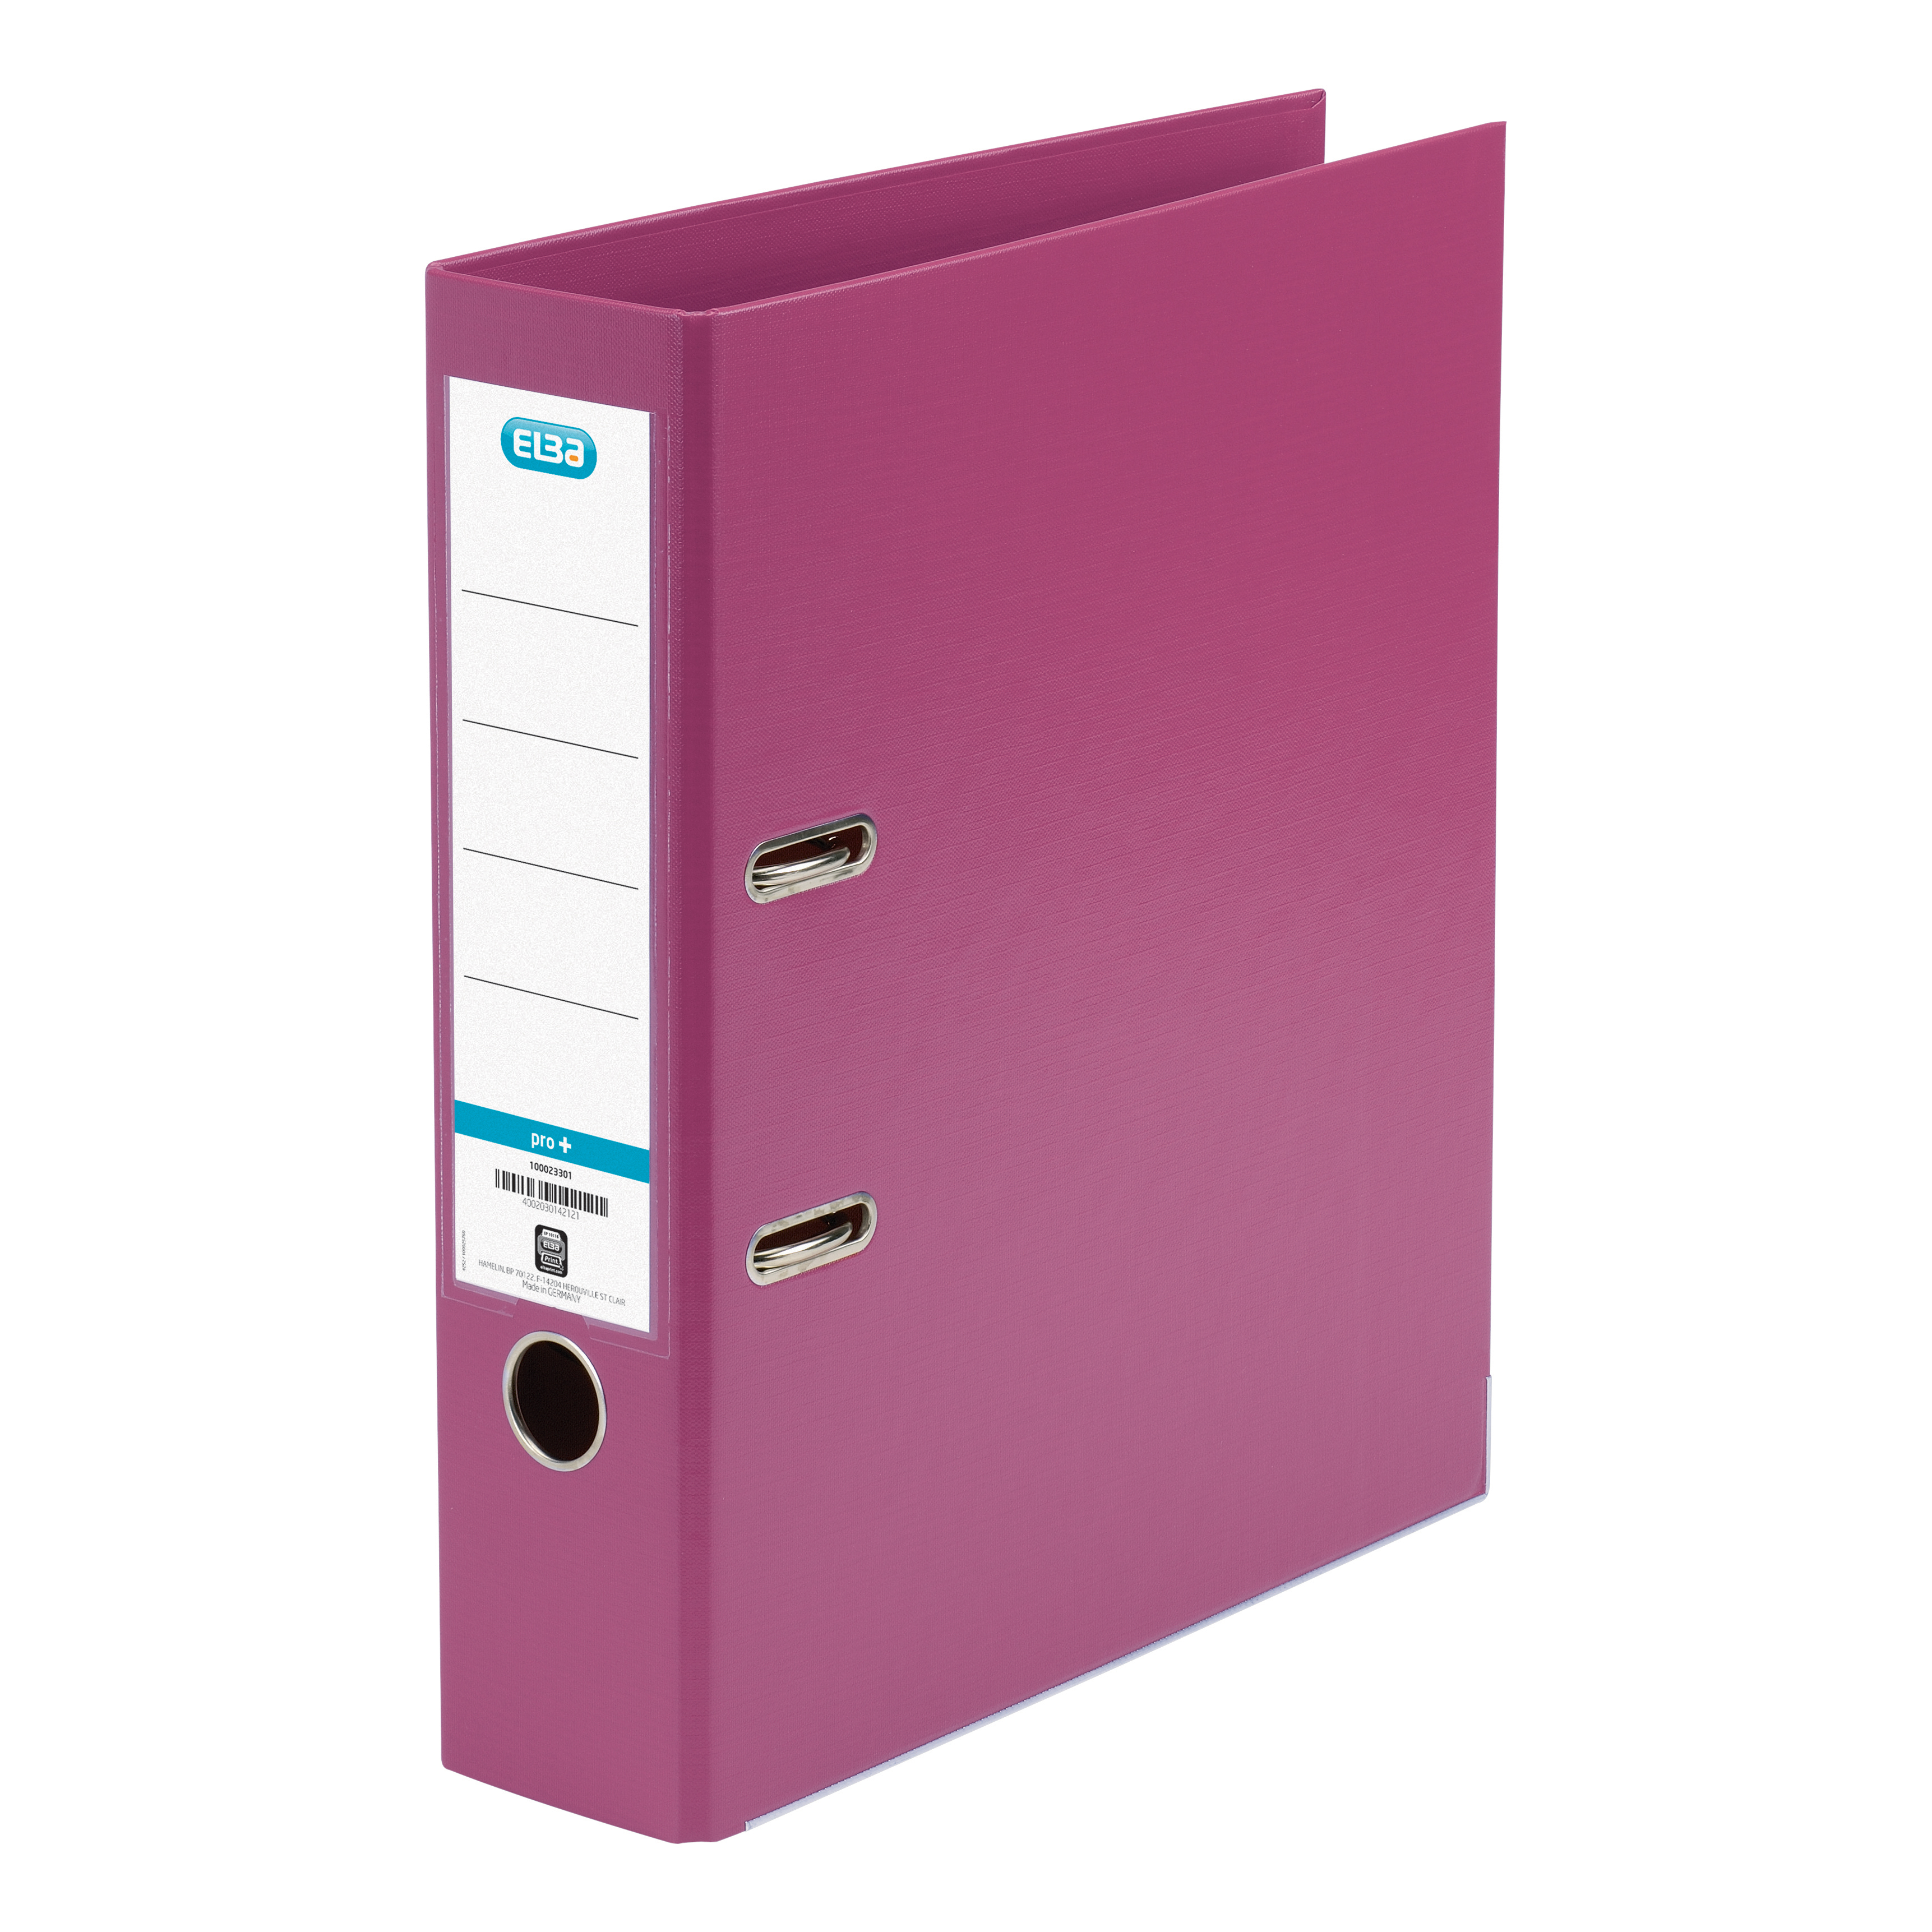 Elba Lever Arch File PP 70mm Spine A4 Pink Ref 100023300 Pack 10